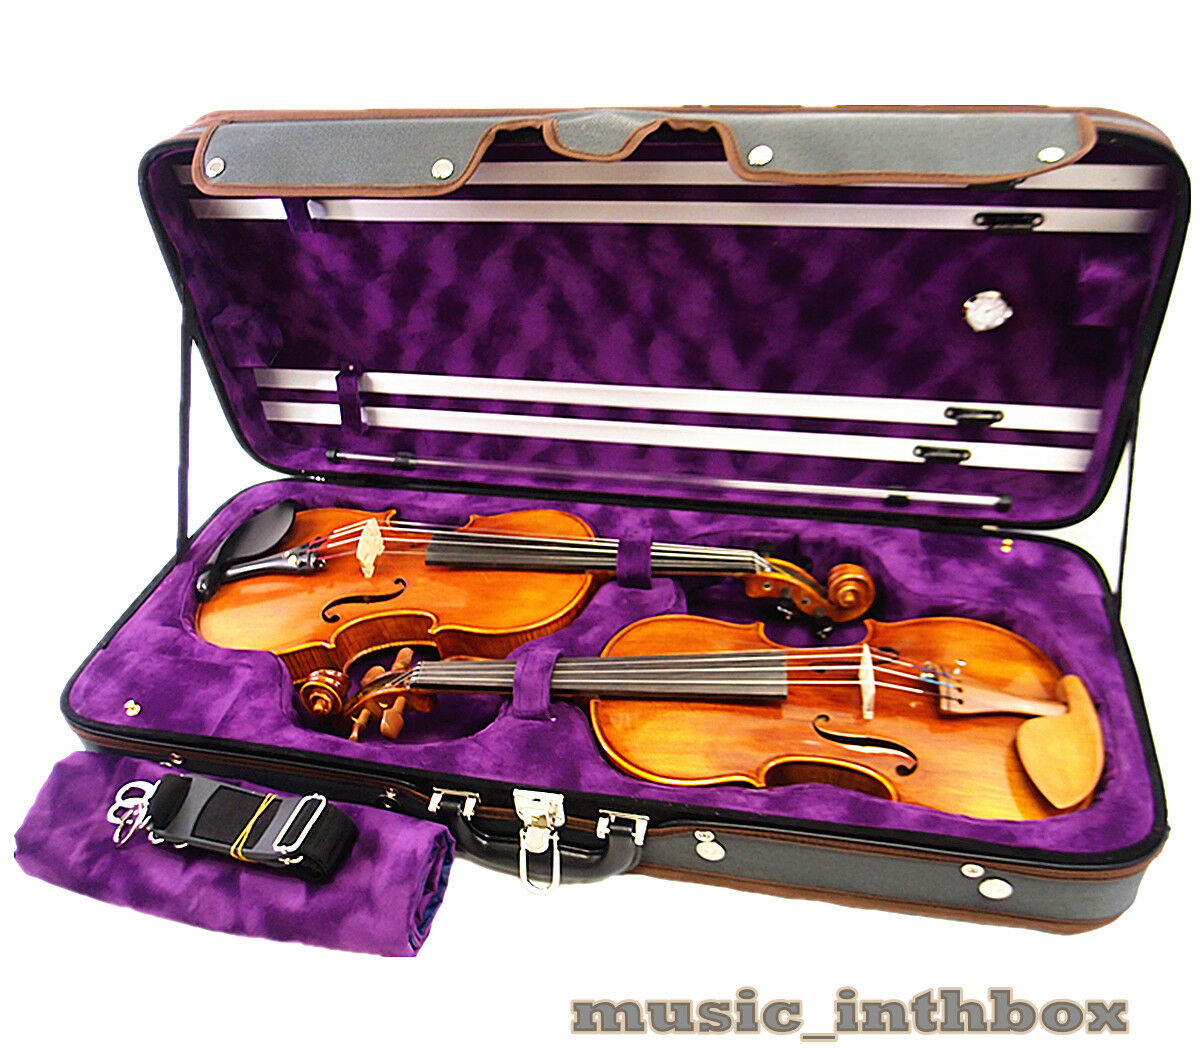 Beautiful Interior 4 4 Wooden Two Double Violin Case + Free violin strings set